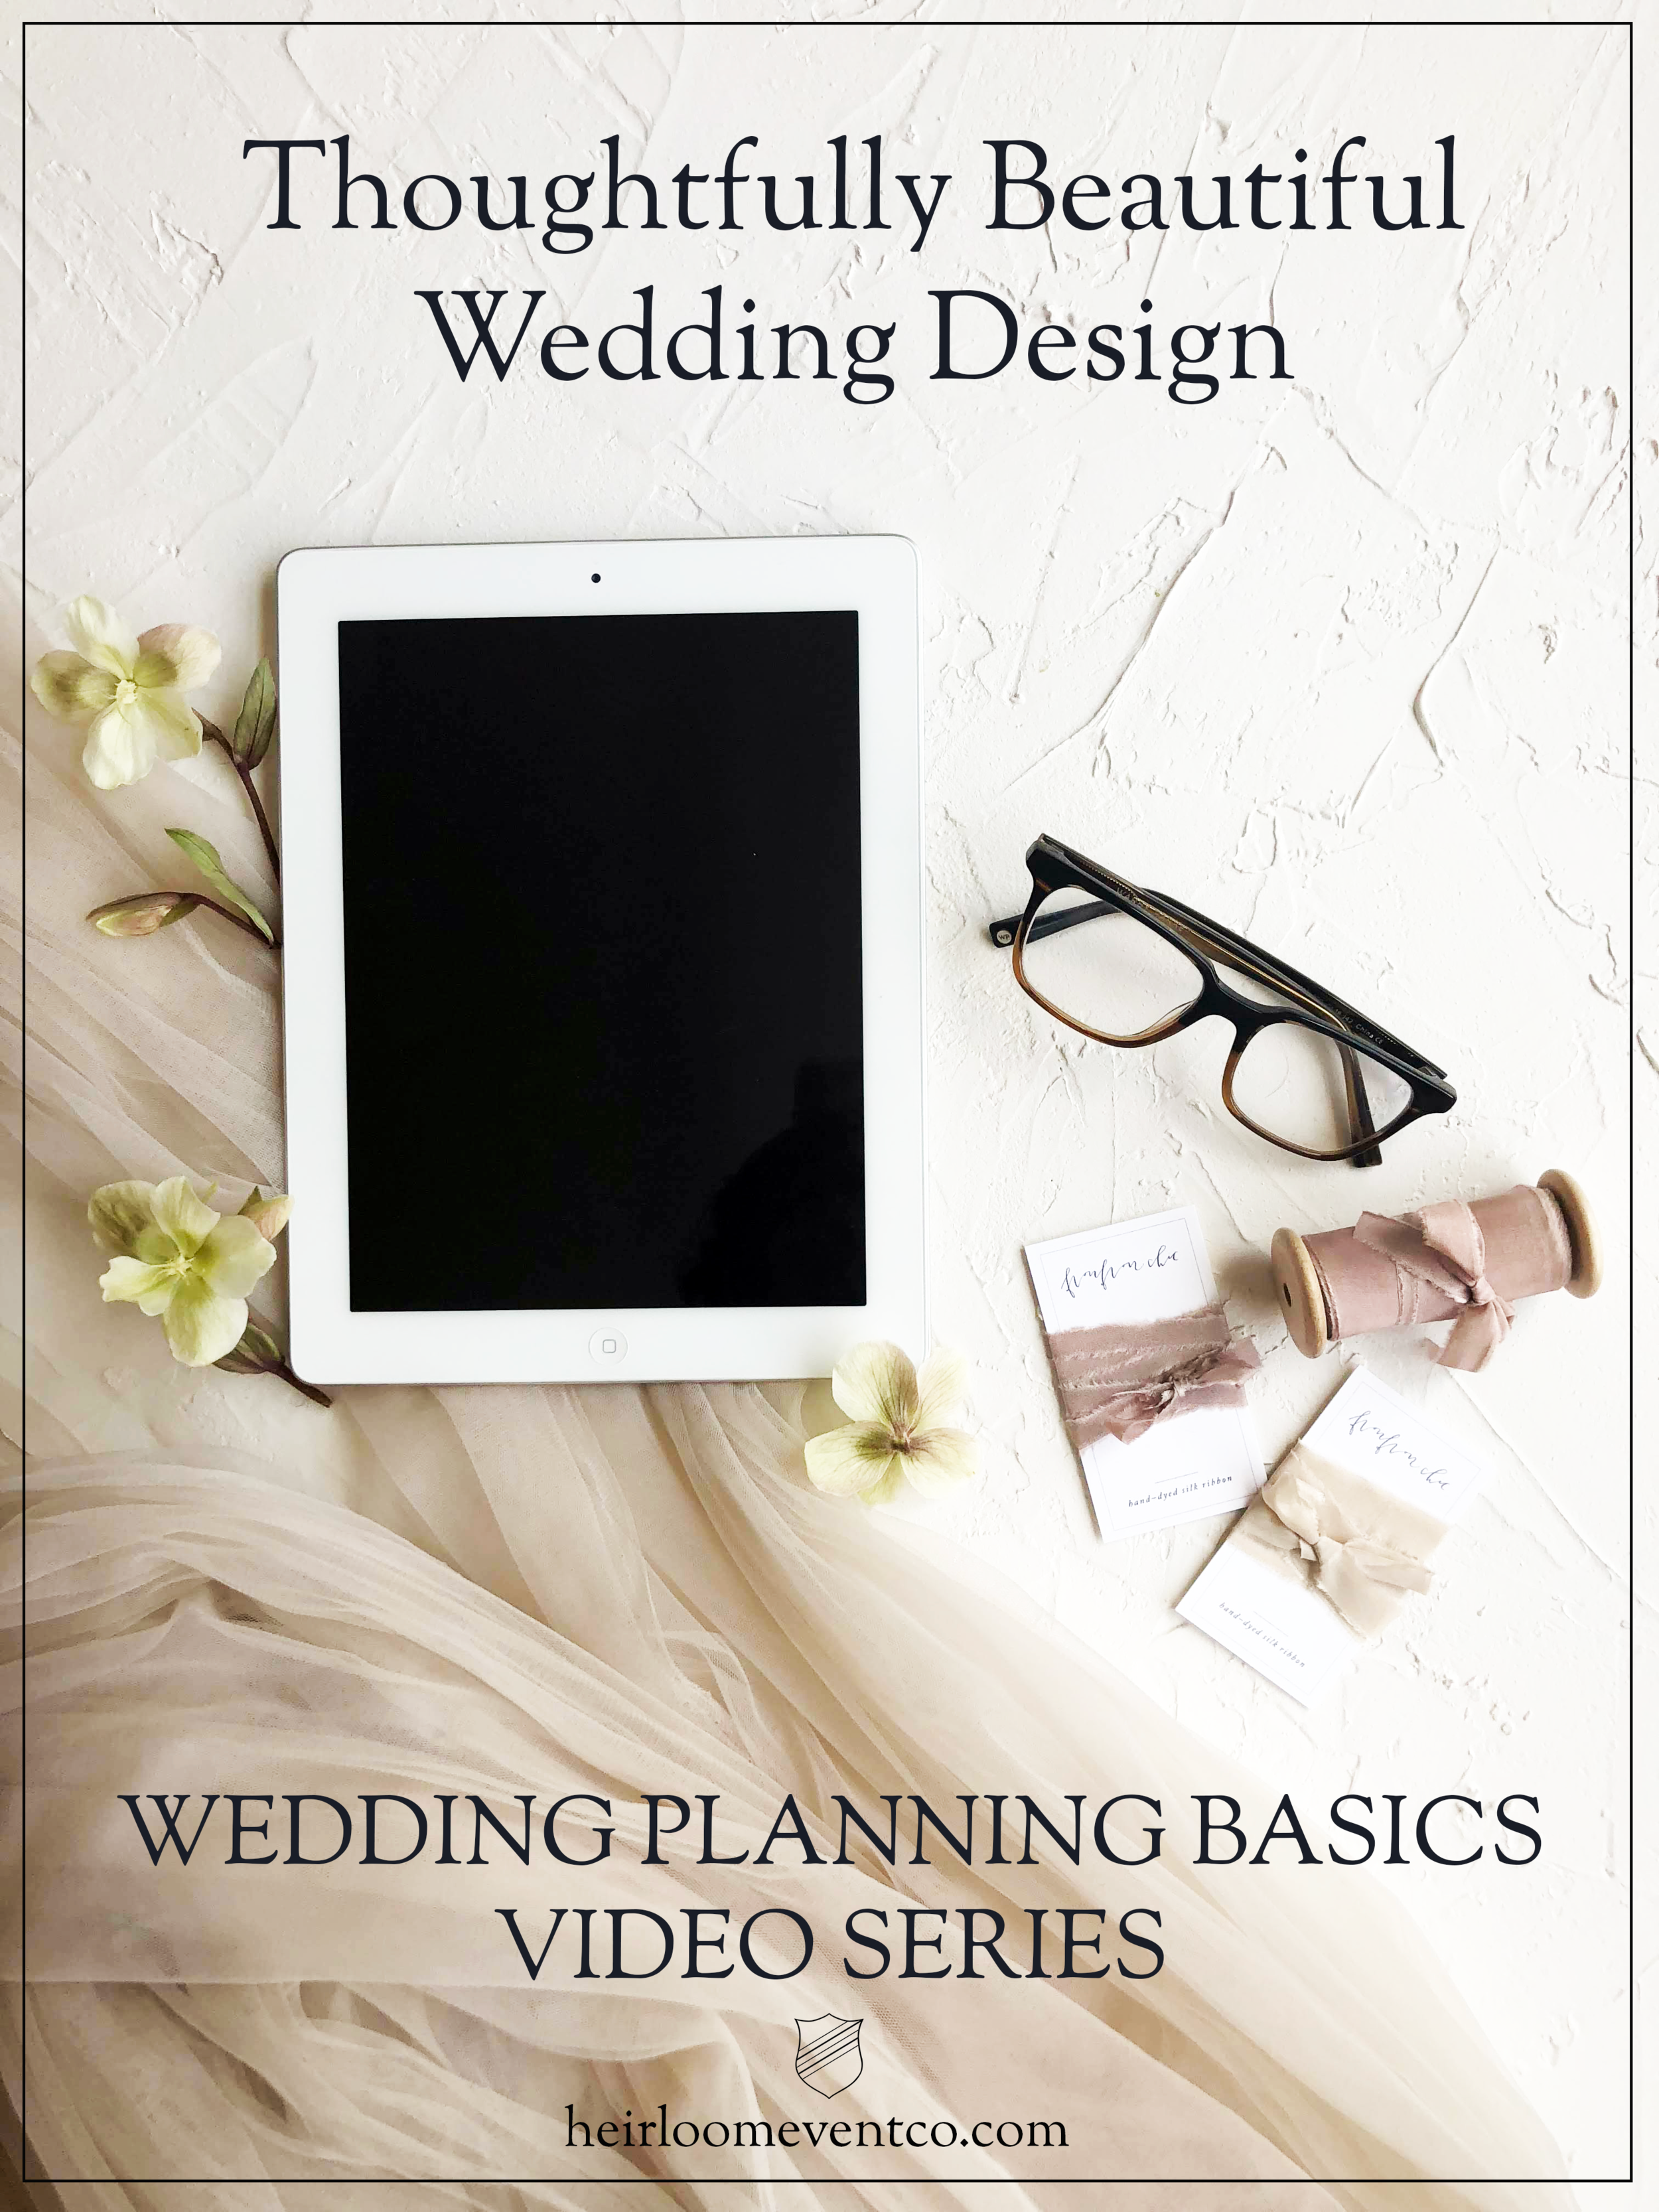 Wedding Planning Basics Video Series // Thoughtfully Beautiful Design